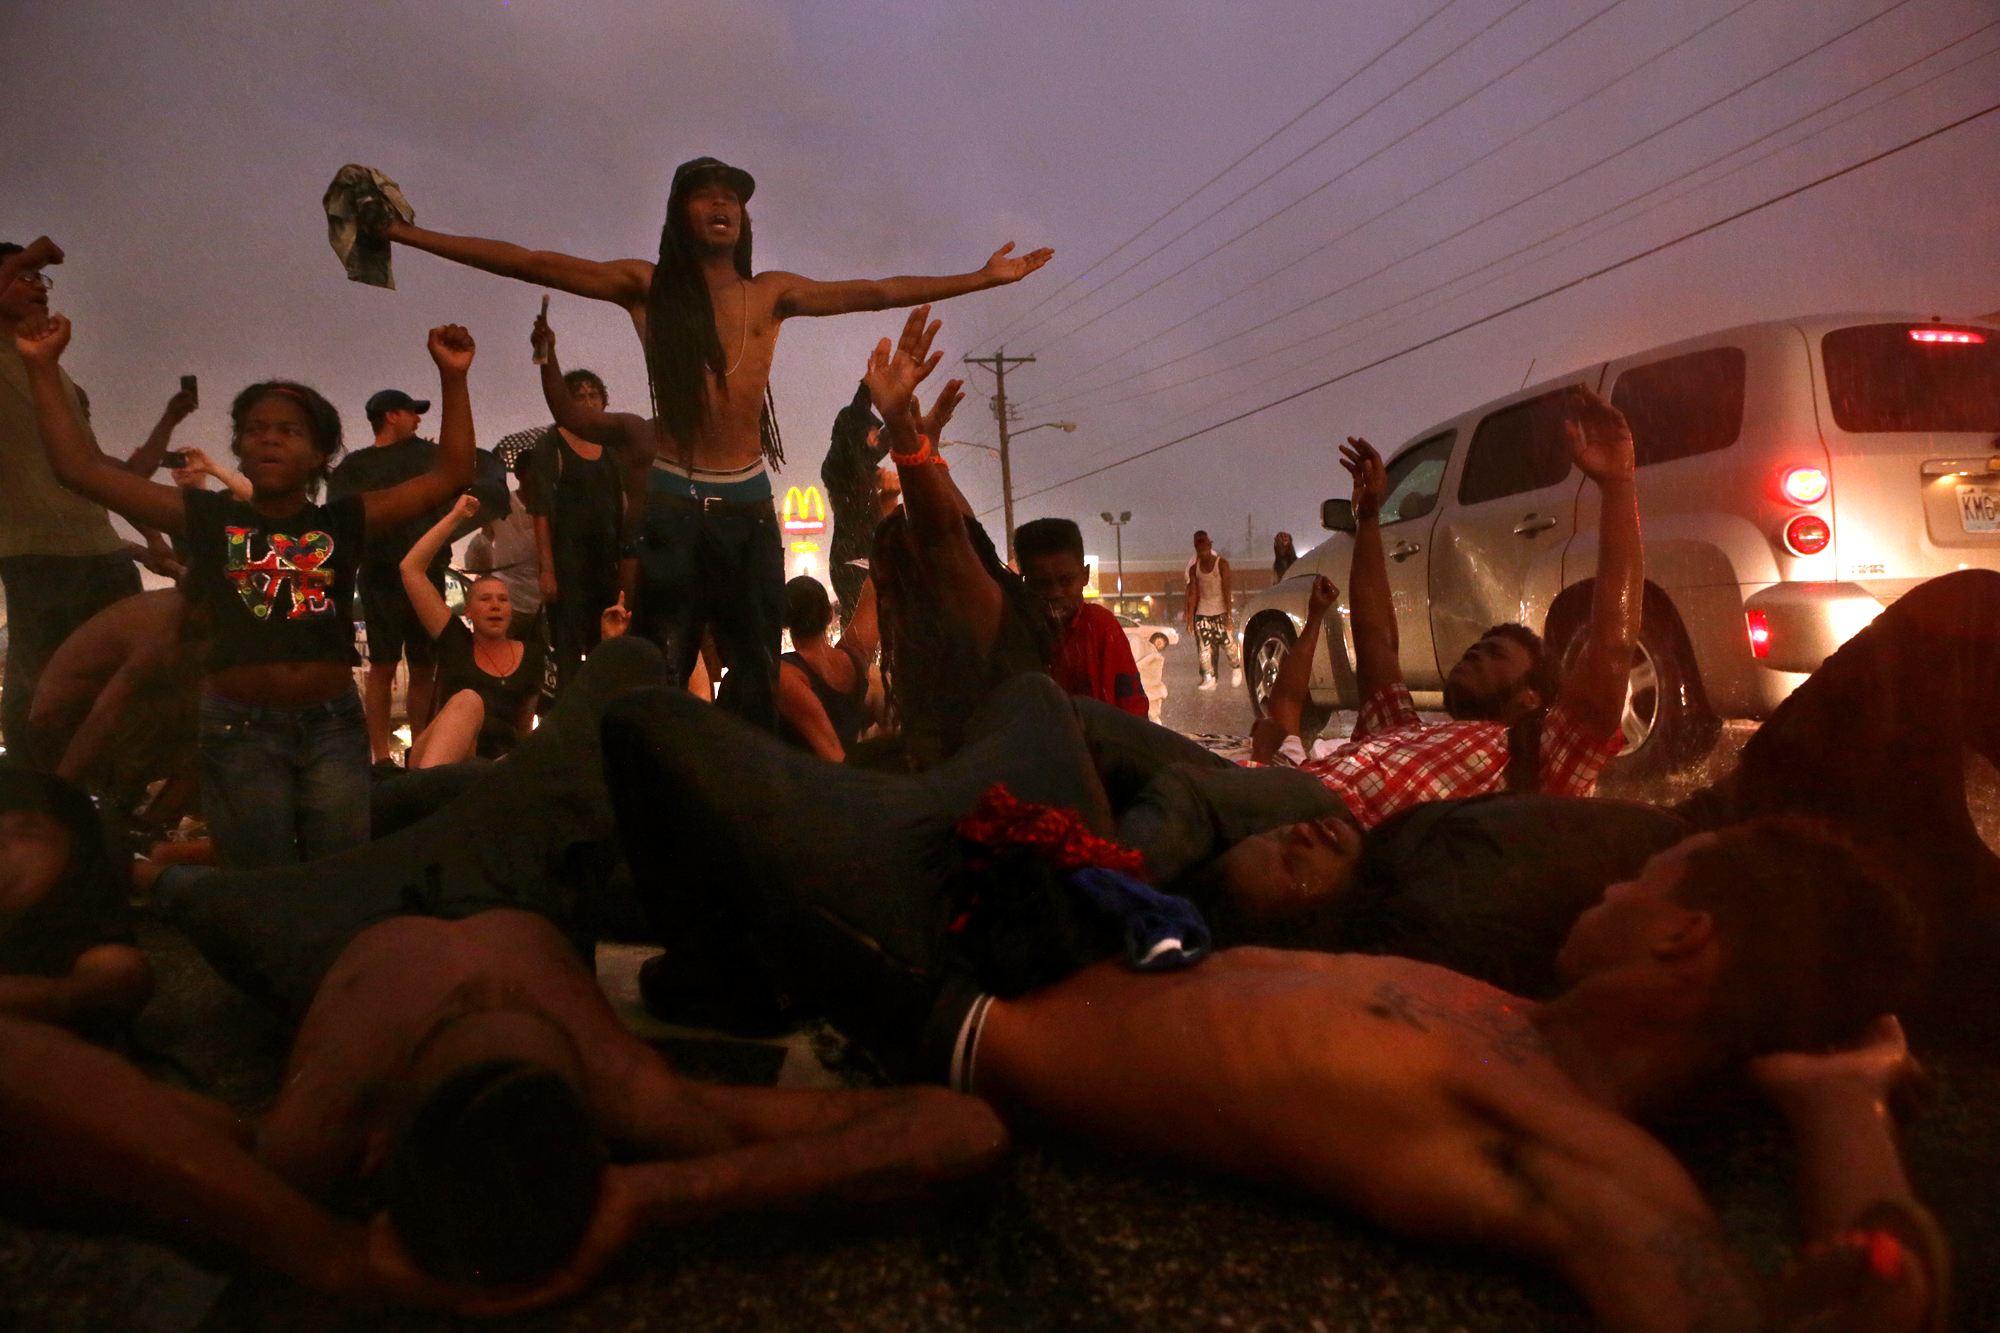 Protesters lie down in the middle of West Florissant Avenue as they demonstrate on the one year anniversary of Michael Brown's death by Ferguson police officer Darren Wilson on Sunday, Aug. 9, 2015.